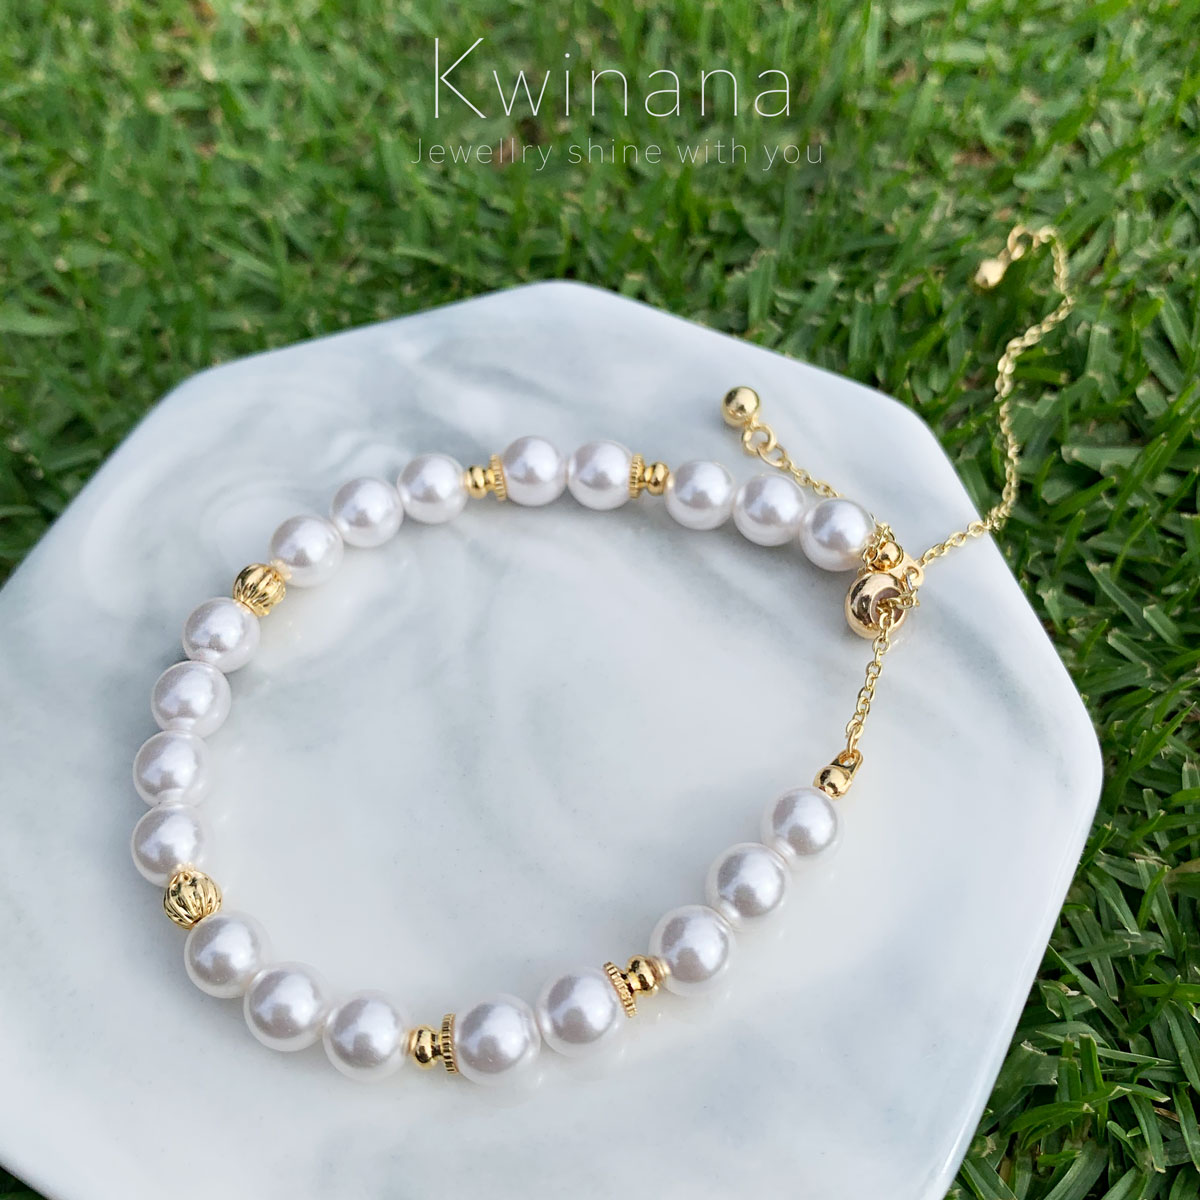 14k Gold Fill Cotton Beads Bracelet